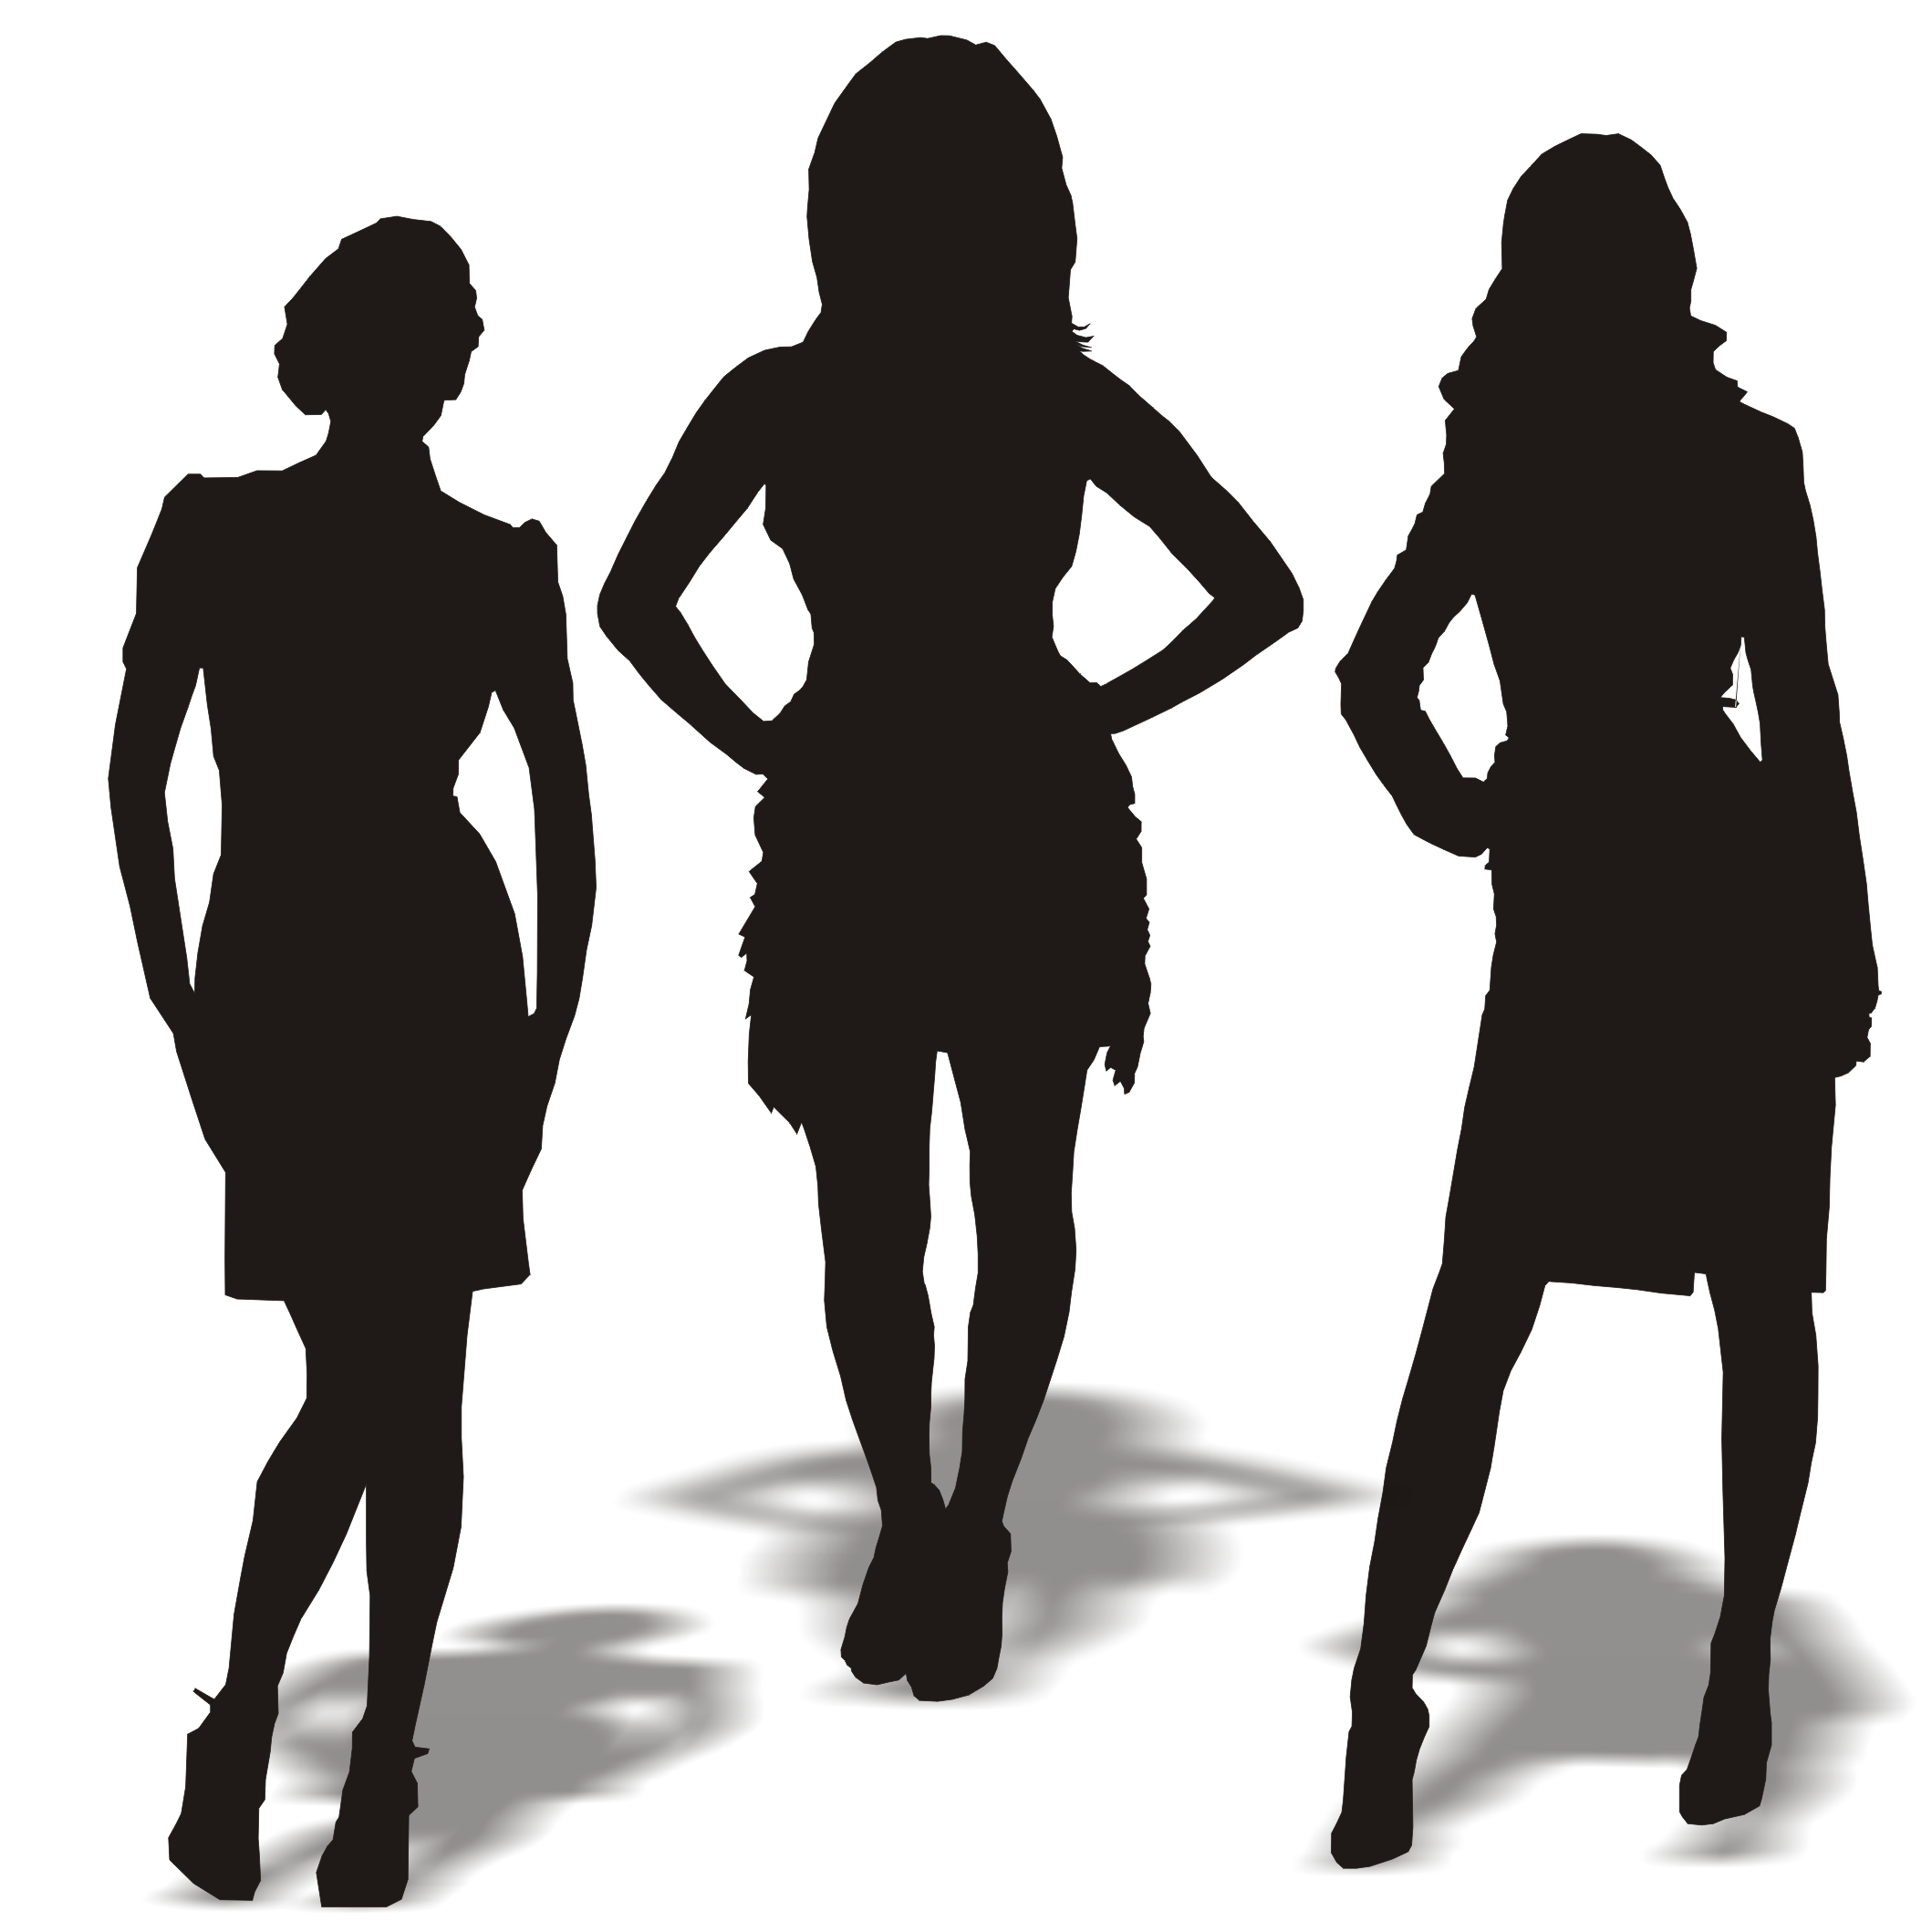 17 Silhouette Vector Free Businesswoman Images